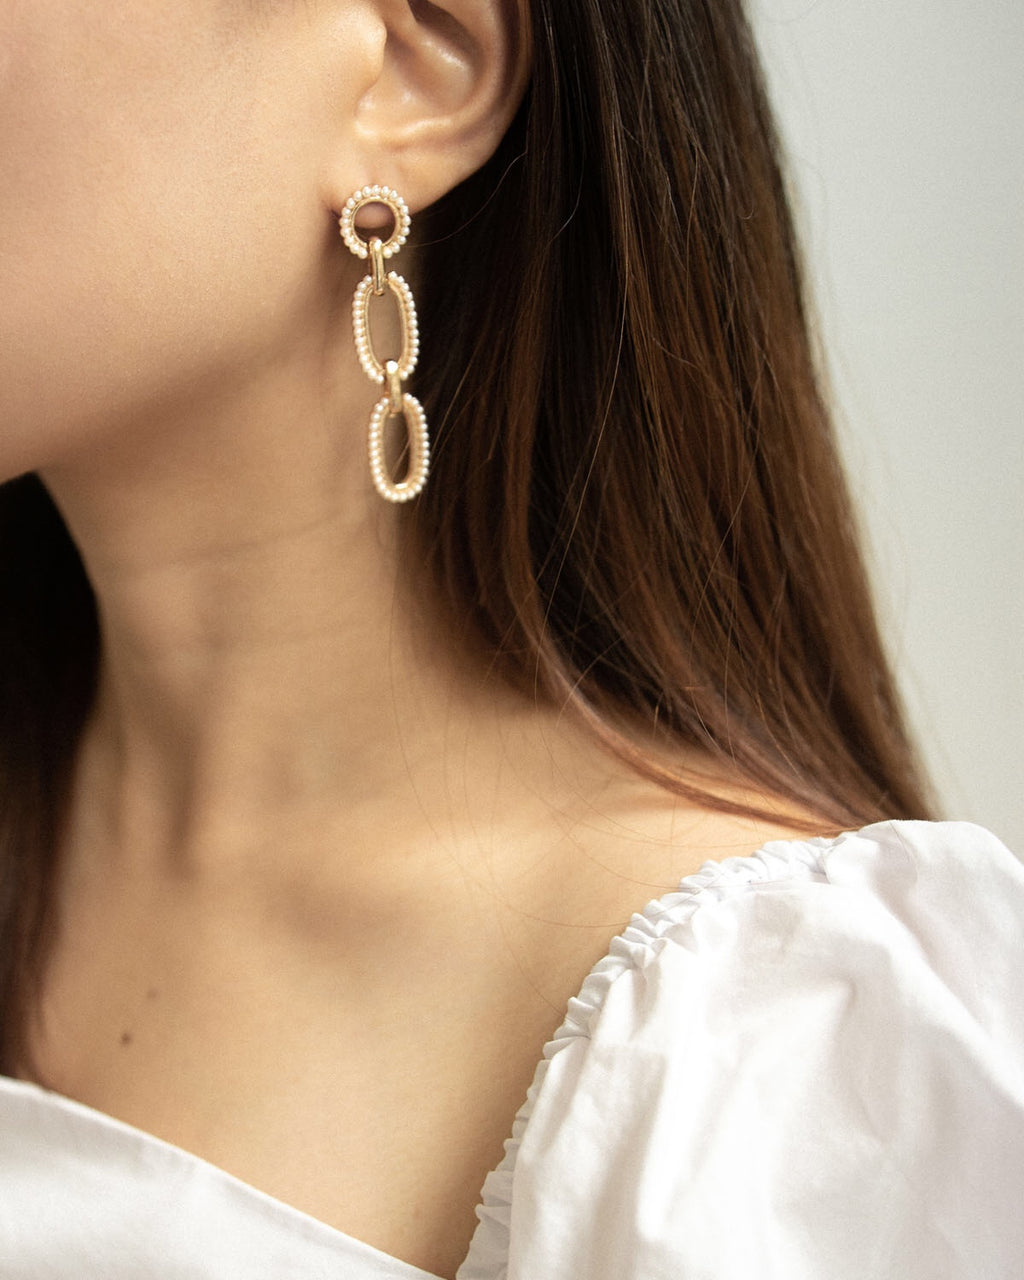 Classy drop earrings embellished with faux pearls - The Hexad Jewelry